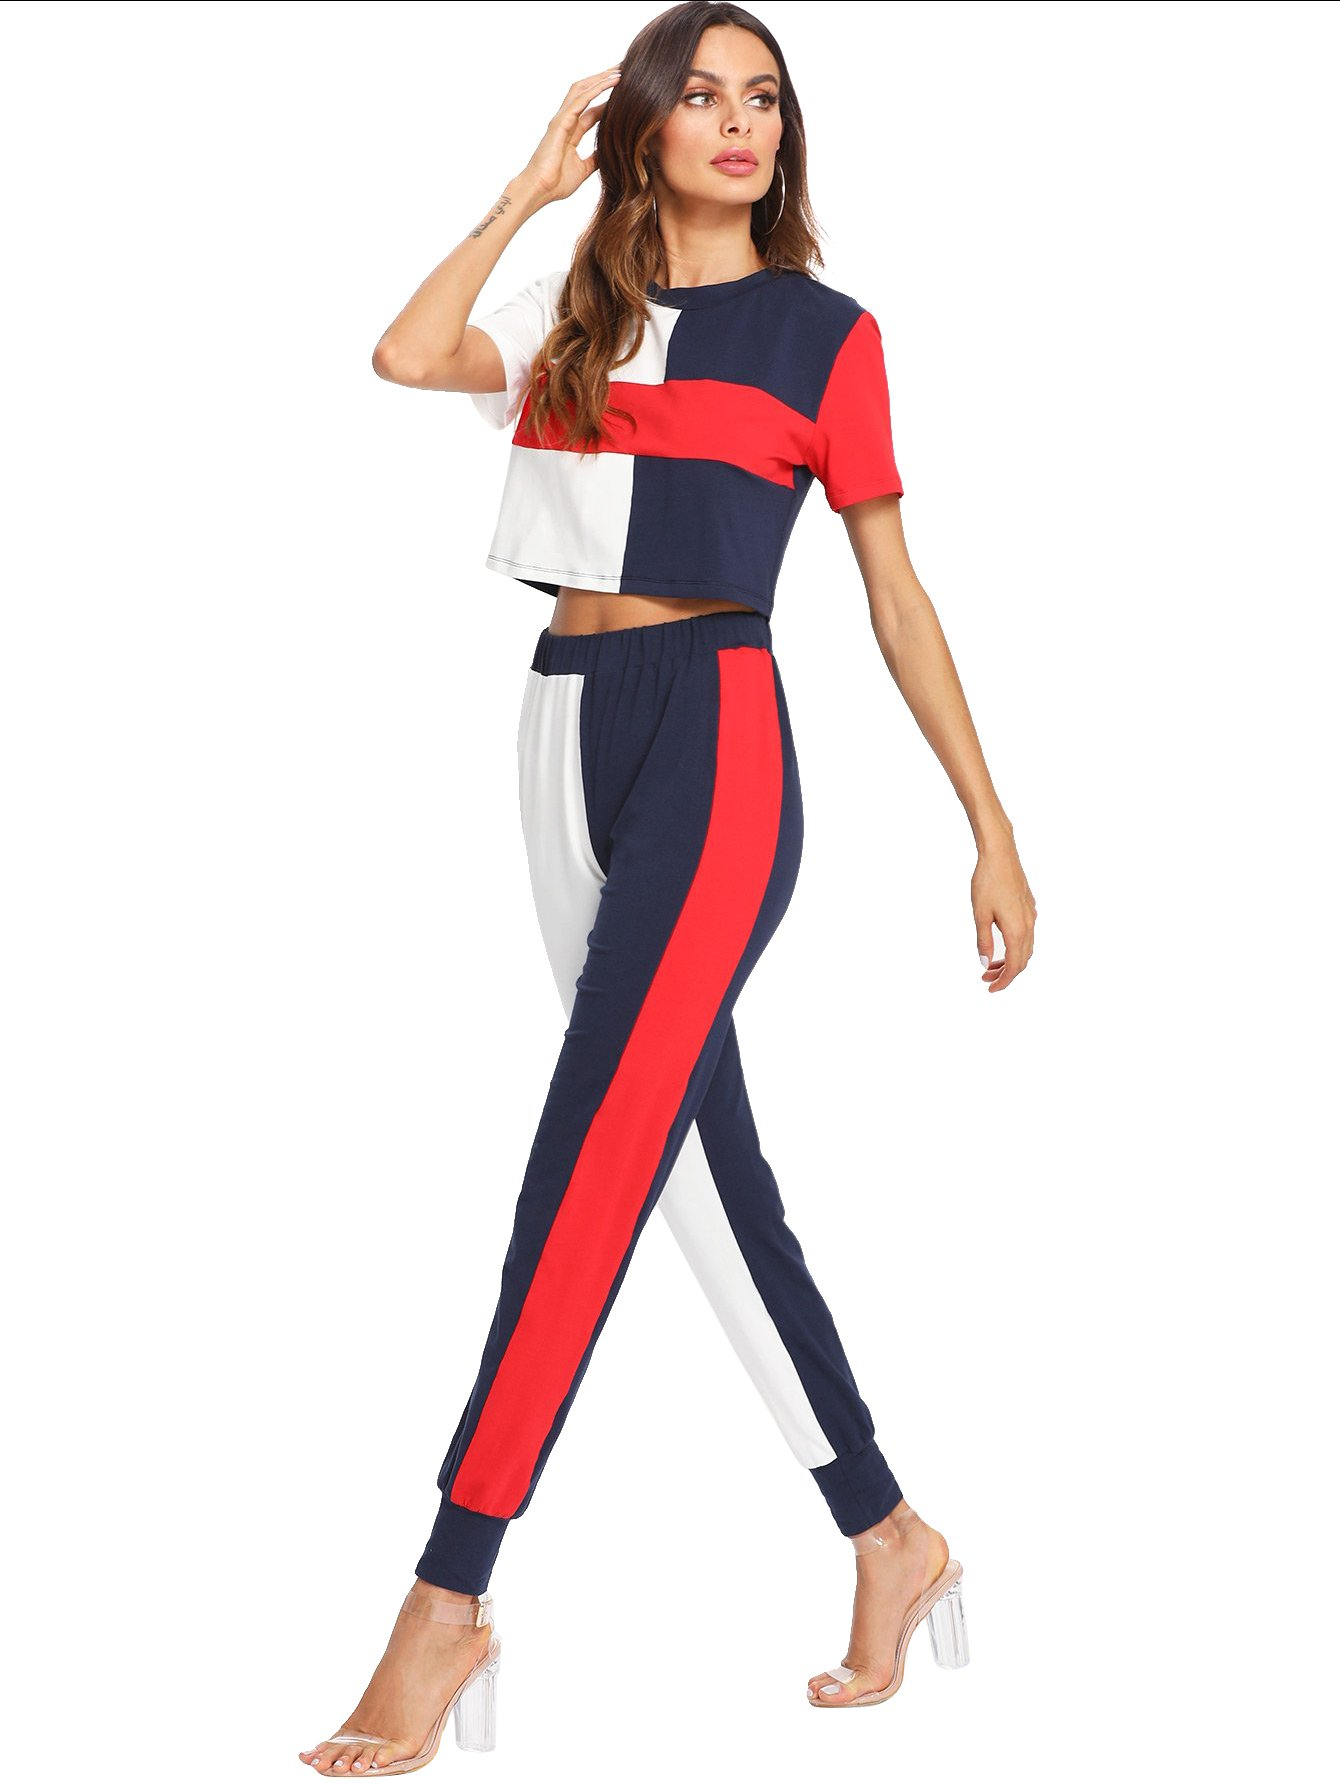 SweatyRocks Women's 2 Piece Outfits Elegant Color Block Crop Tops and Sweatpants Tracksuits Color Block M